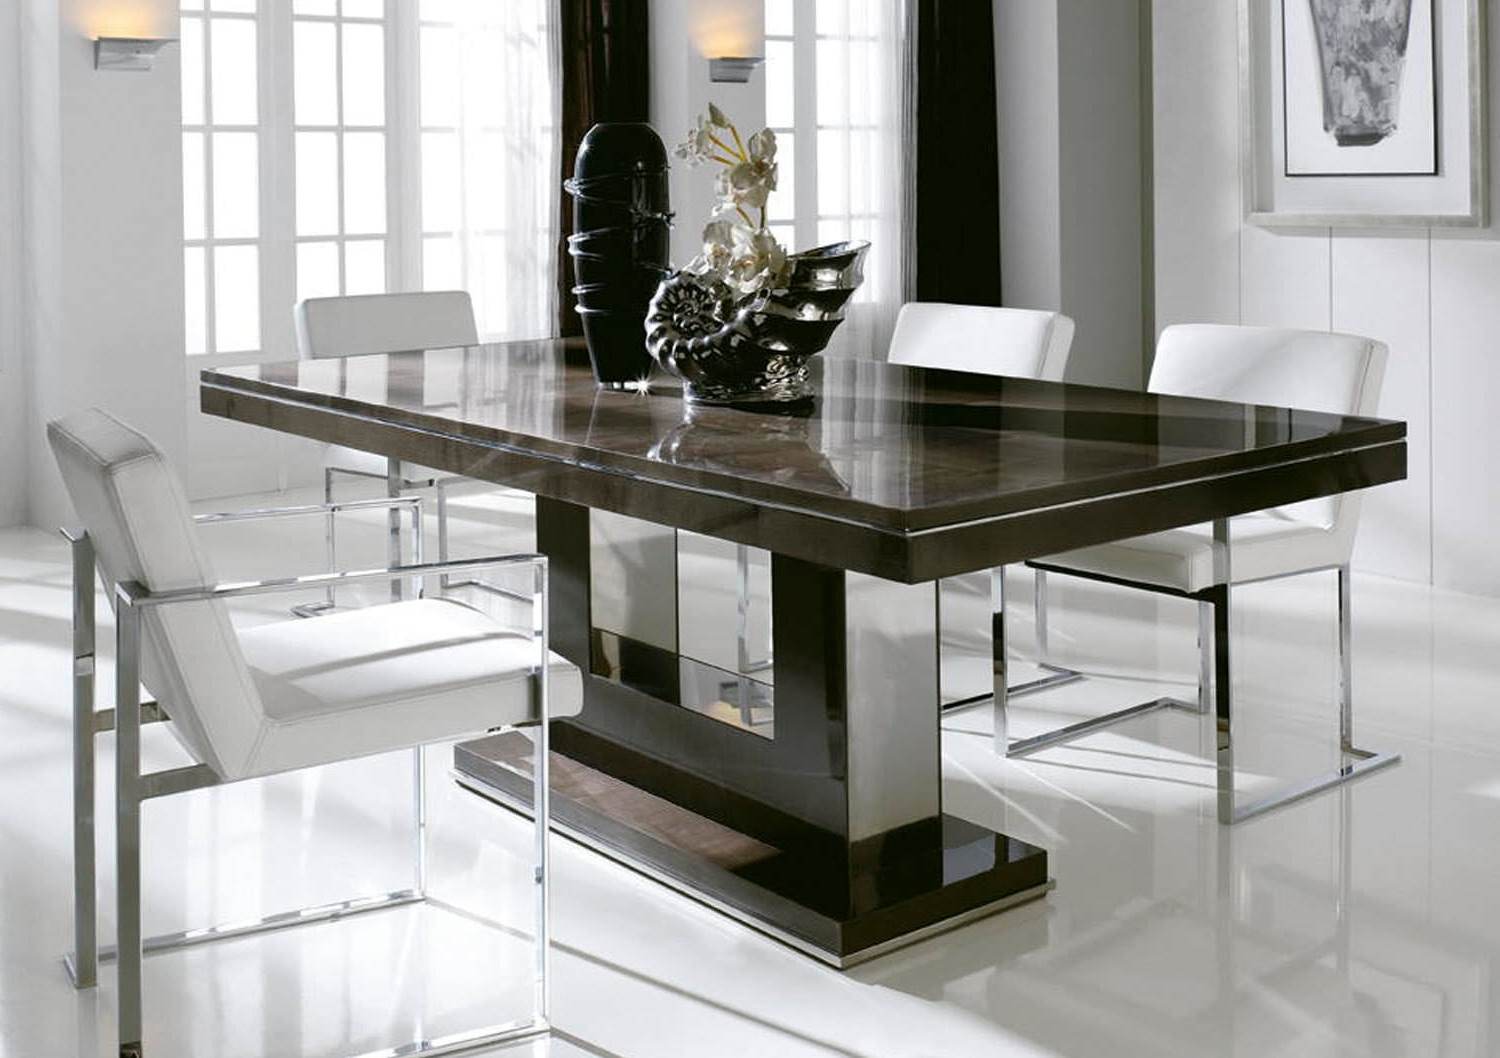 Best And Newest Contemporary Dining Tables – Decoration Channel Regarding Contemporary Dining Tables (View 3 of 25)